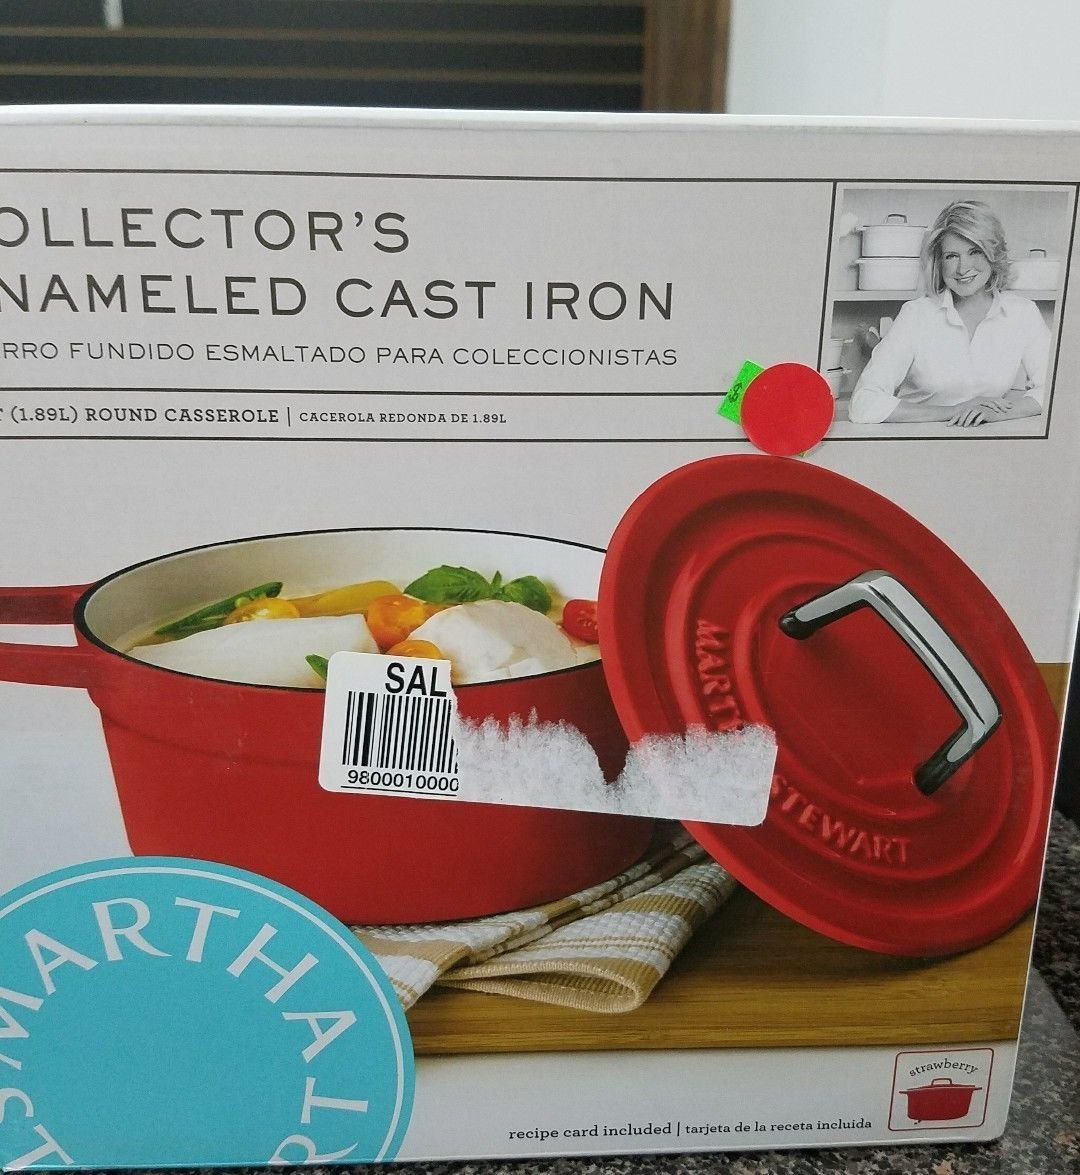 Martha Stewart Collection Collectors STRAWBERRY Enameled Cast Iron 6 Qt Round Casserole Dutch Oven